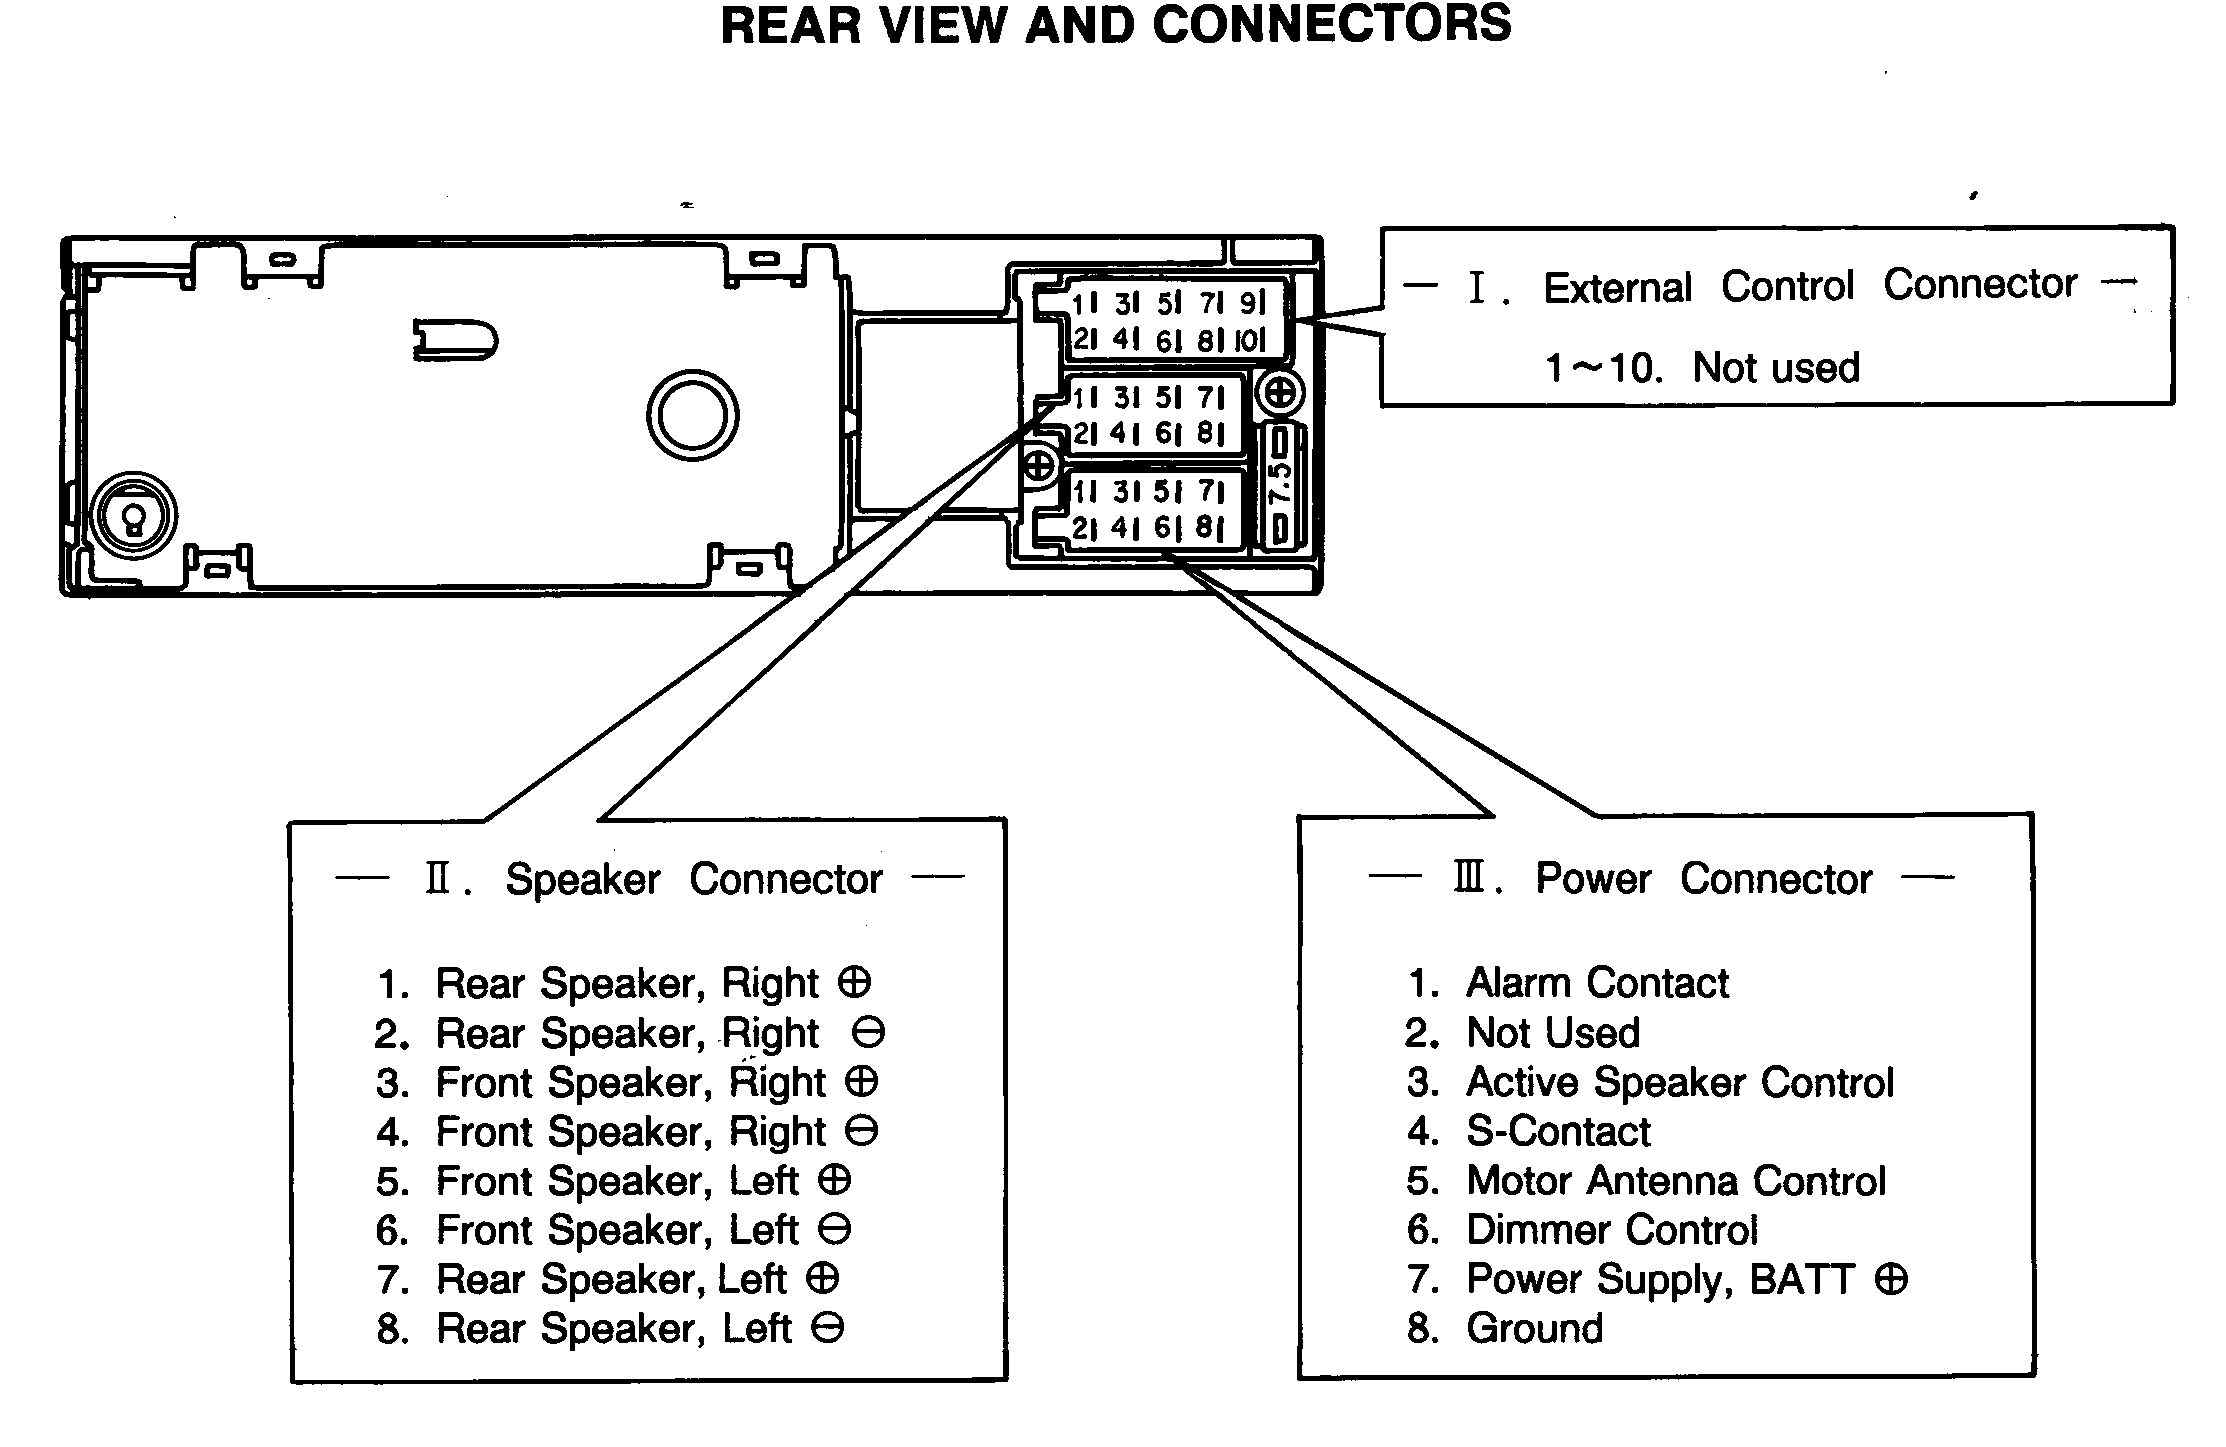 Wiring Harness Colors Vw Focus Radio Simple Guide About Shaker 500 Cd Player Diagram Schematic Rh Macro Program Com